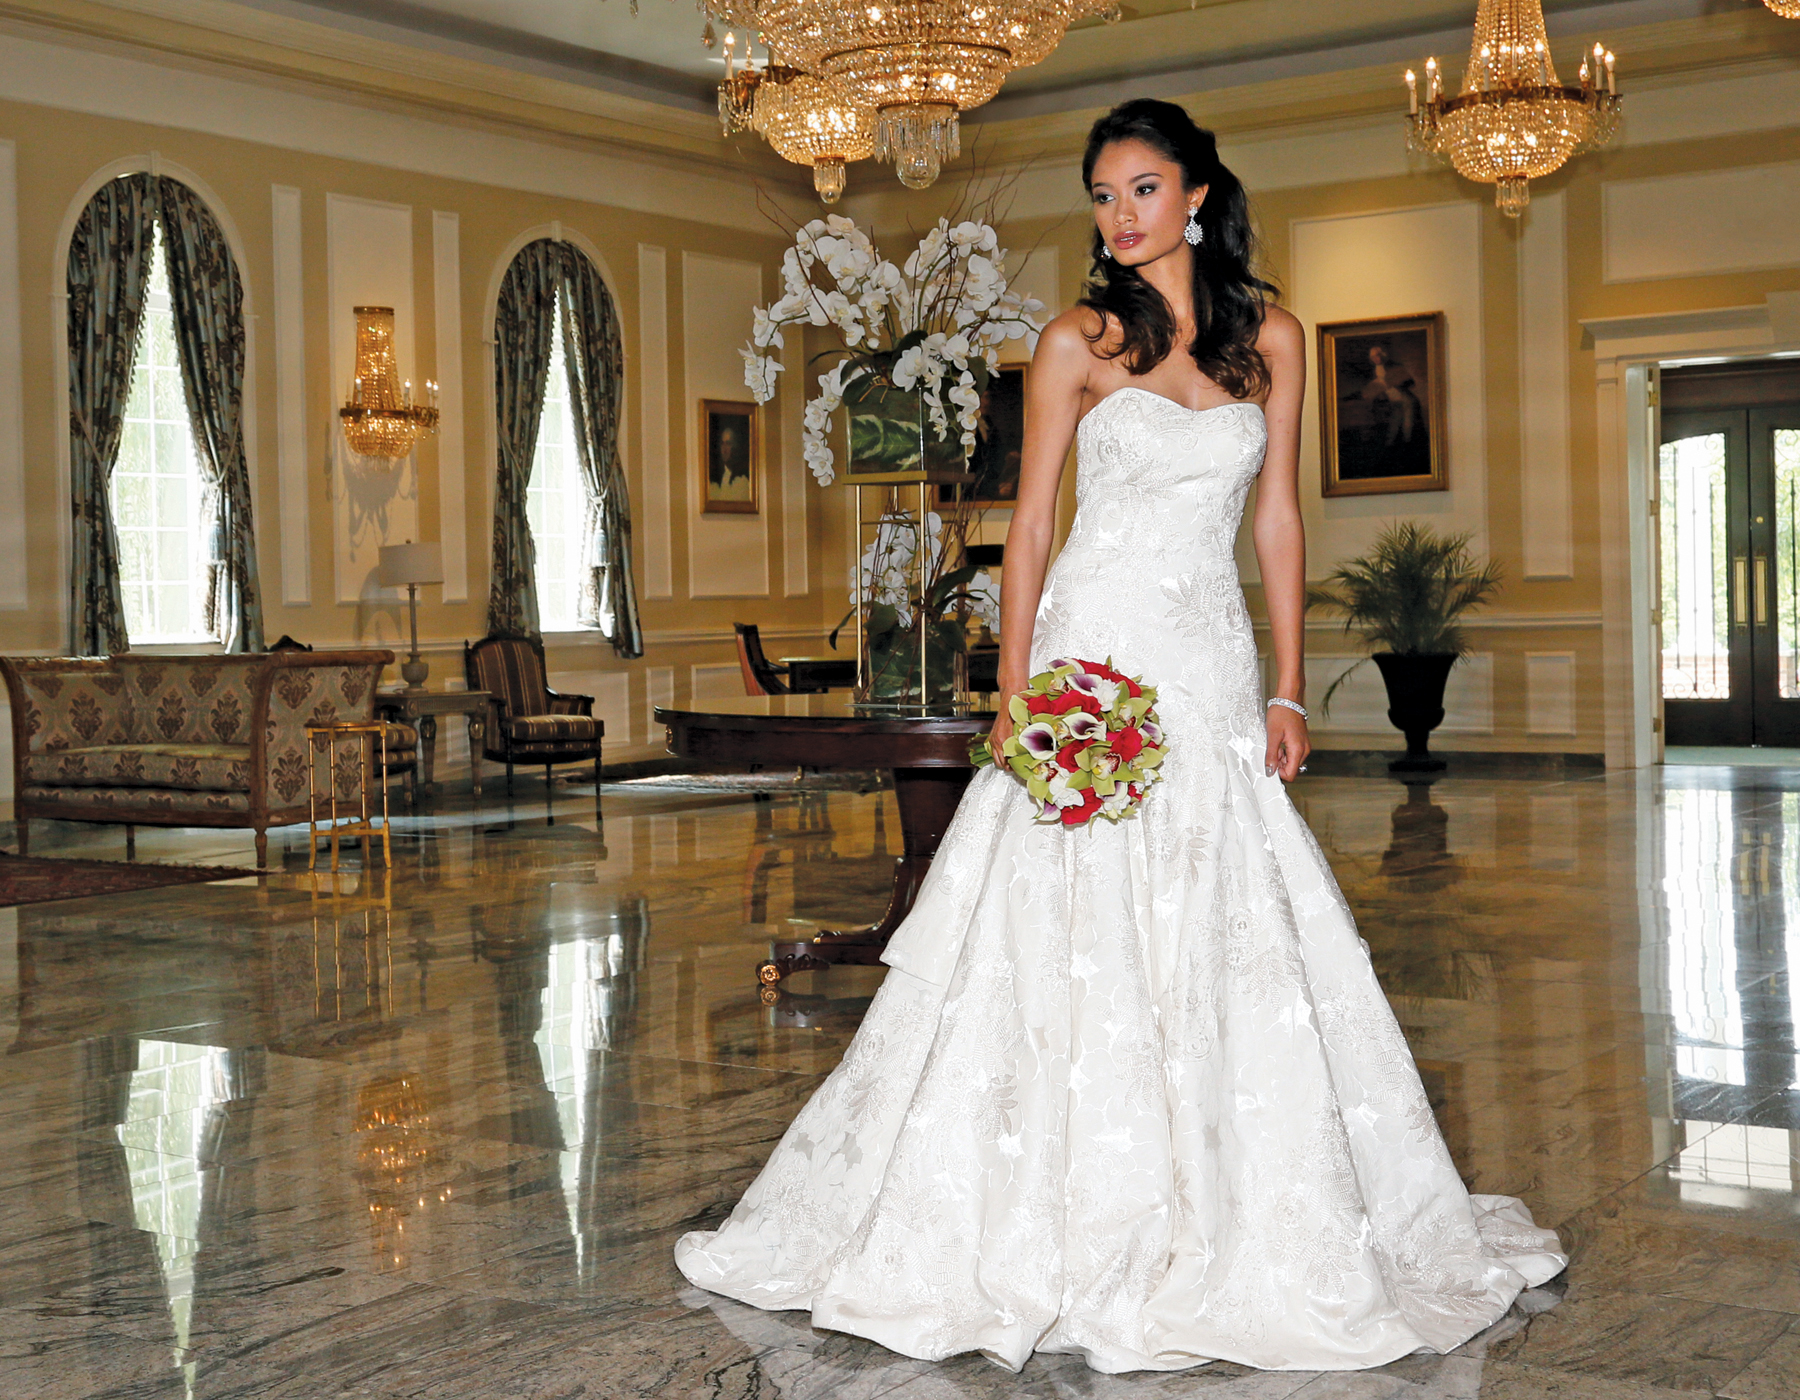 Oleg Cassini Bridal Wedding Fashions in NYC